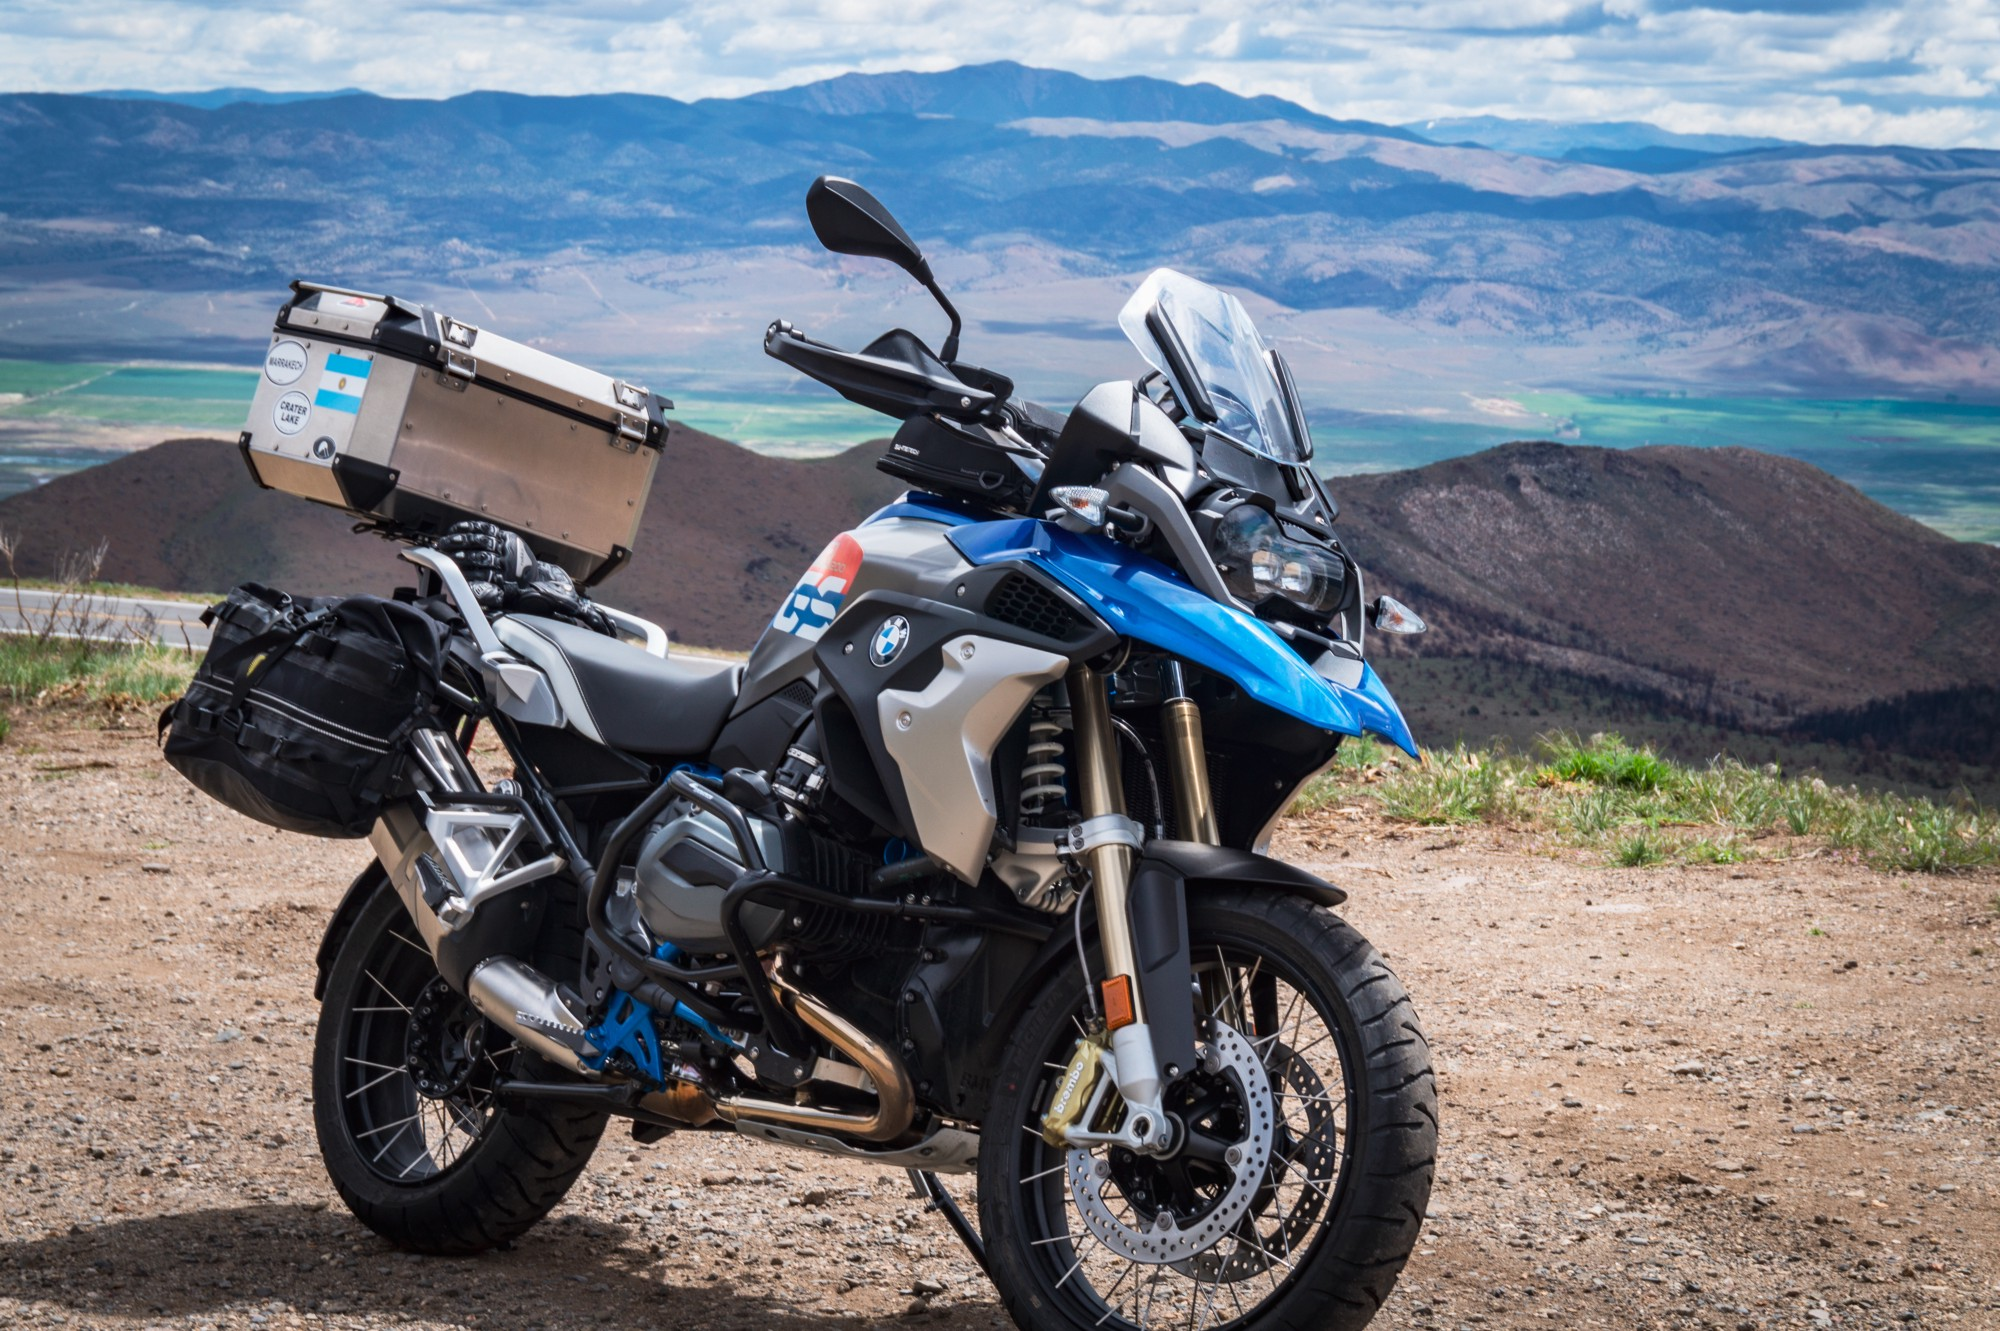 An Honest Motorcycle Review The 2018 Bmw R1200gs Lowered Rallye Spec